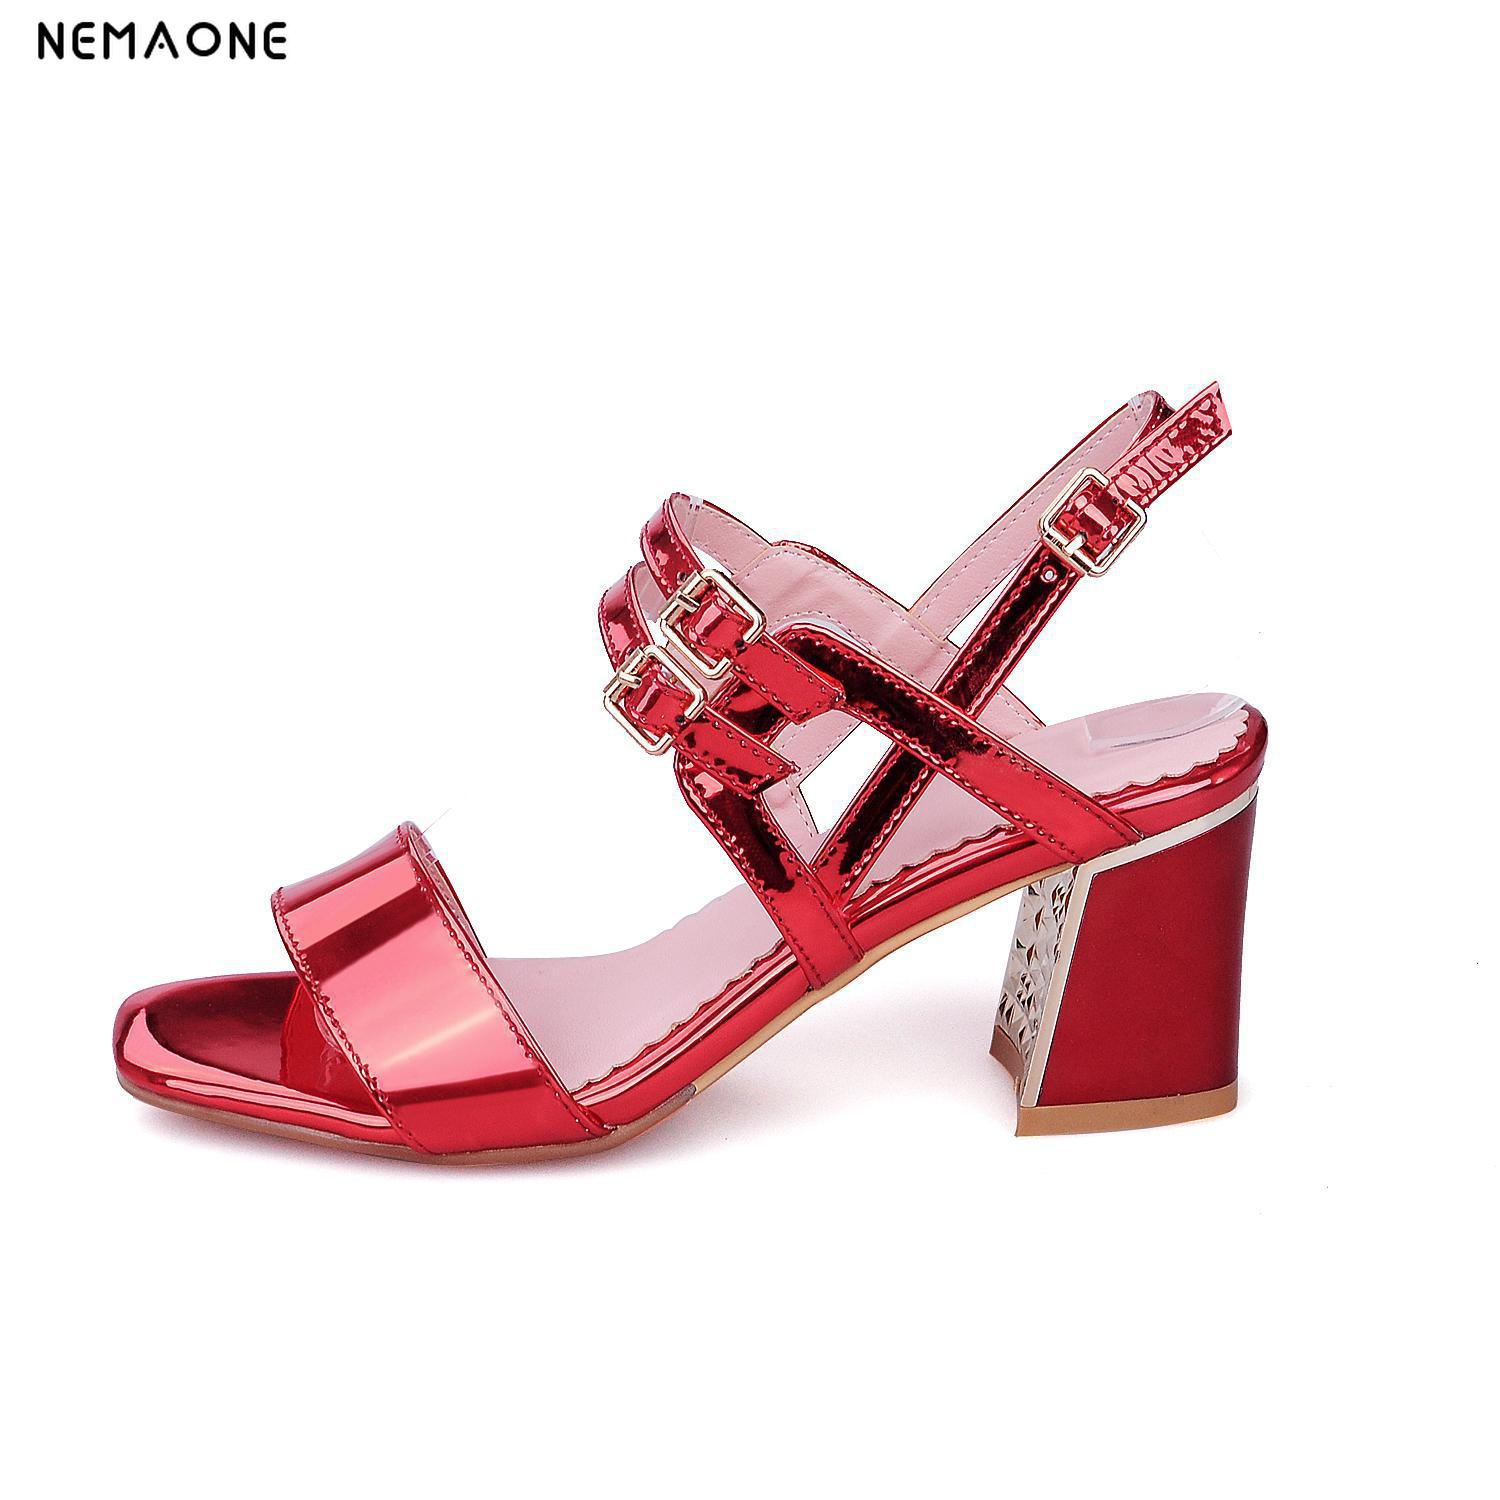 NEMAONE New 2017 Sexy buckle Women Sandals Square Heel Slip-On Sandals Summer Shoes Woman High Heel Sandals new women sandals low heel wedges summer casual single shoes woman sandal fashion soft sandals free shipping